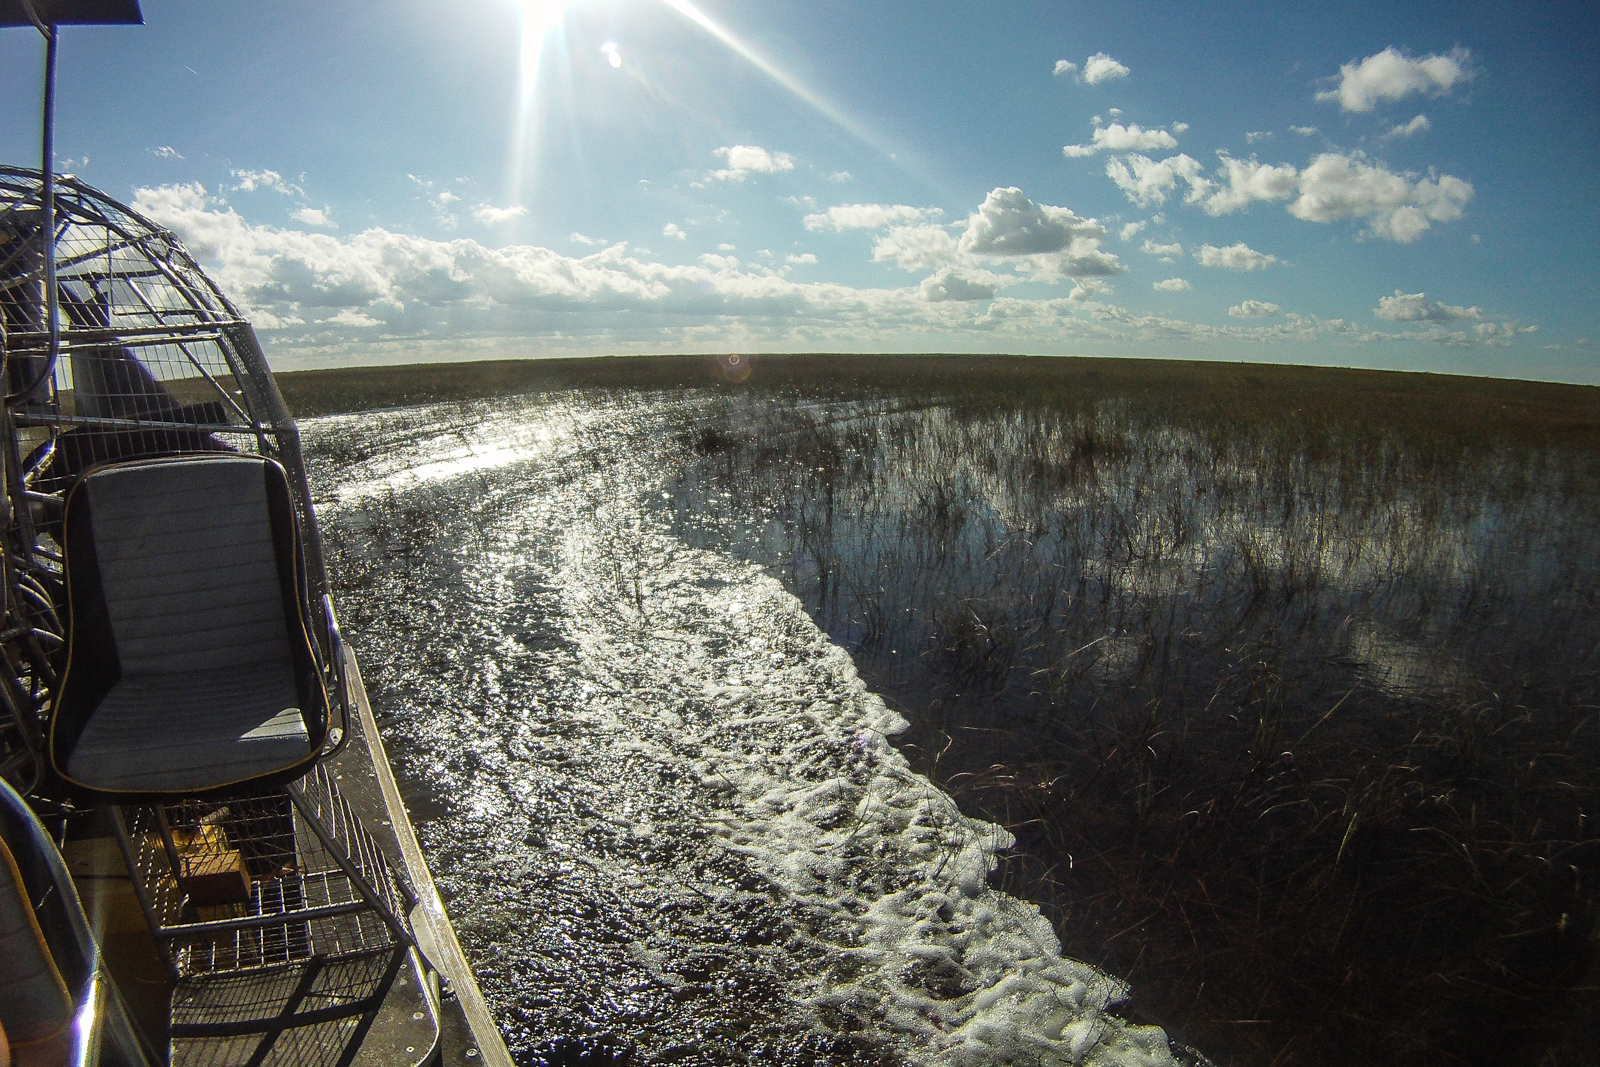 Florida Everglades Airboat Tours from Miami. Things to do in Miami.